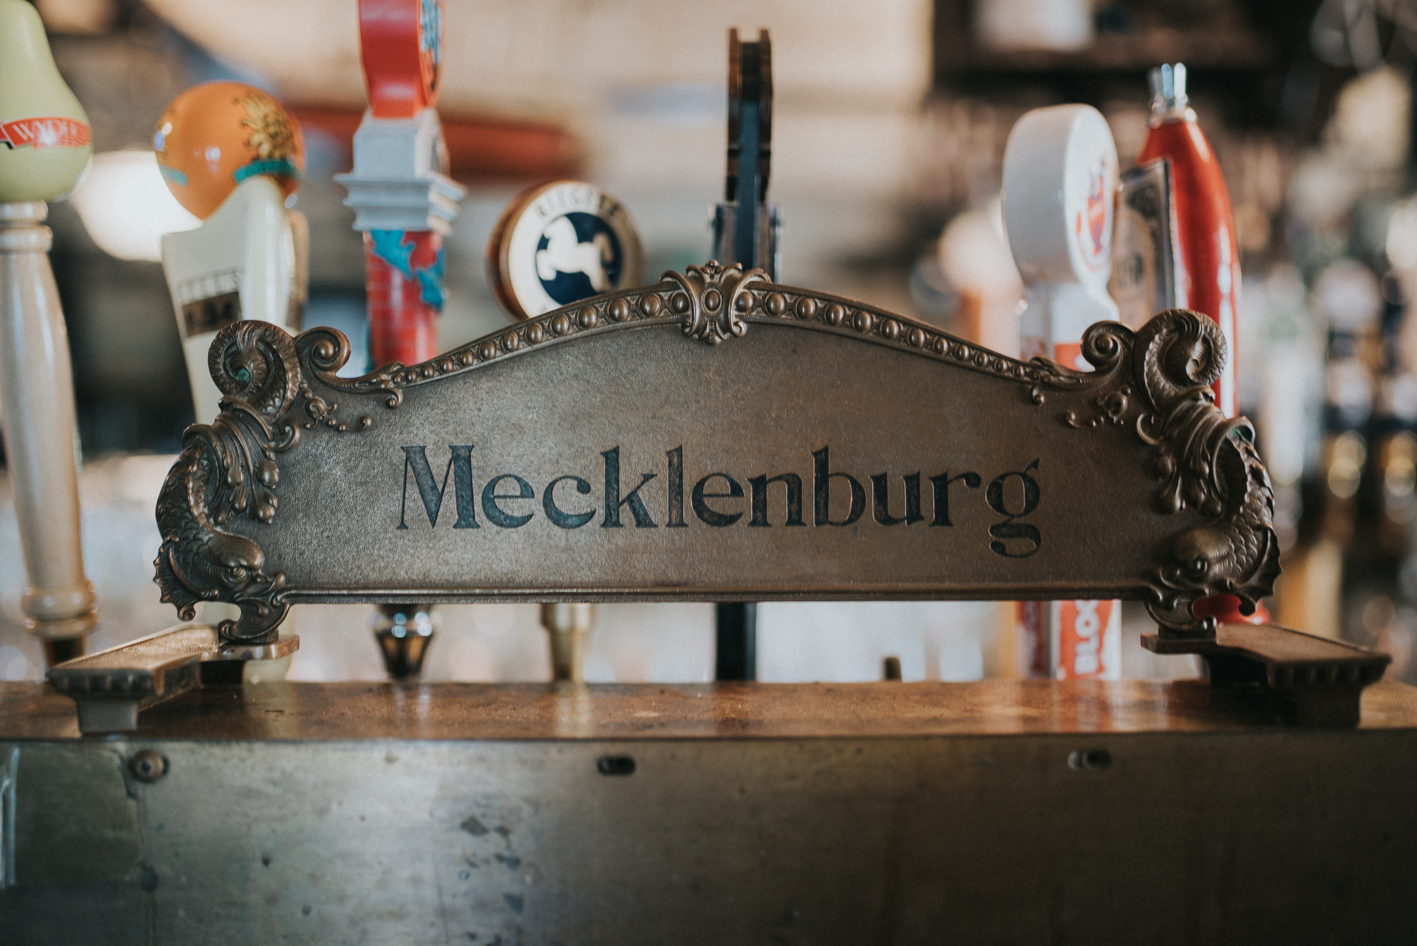 Established in 1865, Mecklenburg Gardens is one of Cincinnati's oldest, still-operating restaurants. It offers authentic German dishes along with German beer. Their critically-acclaimed outdoor patio covered in greenery is the ultimate open-air space to relax with friends and family. Mecklenburg Gardens was rated #1 on Travel and Leisure Magazine's 2013 list of Best American Beer Gardens. ADDRESS: 302 E. University Avenue (45219) / Image: Brianna Long // Published: 5.22.17